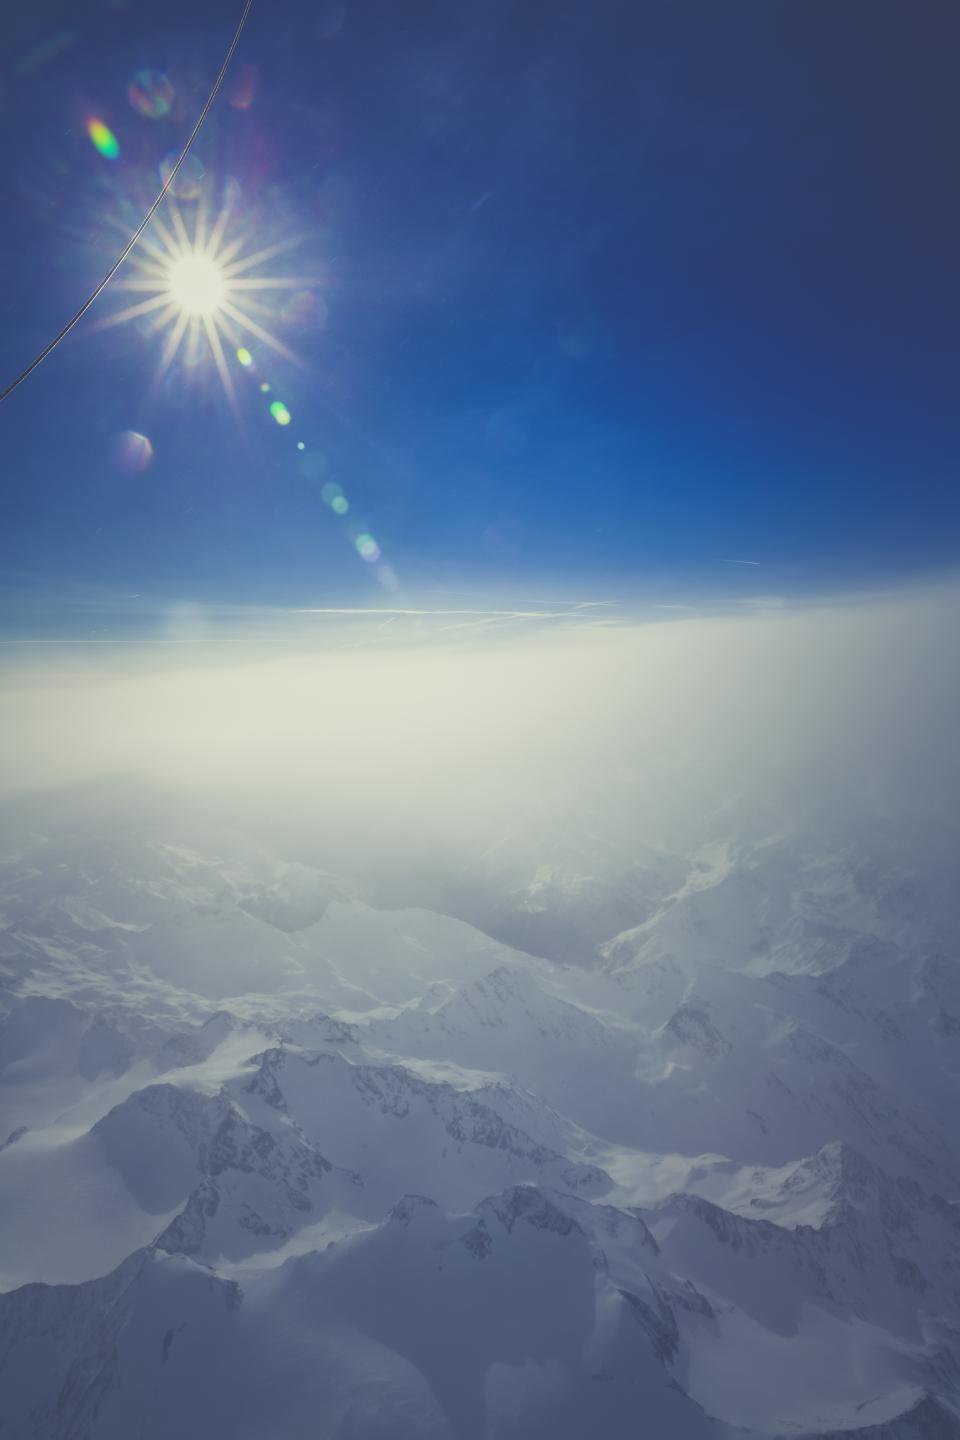 nature landscape mountains snow summit peaks aerial stratosphere sky clouds sun solar flare blue white